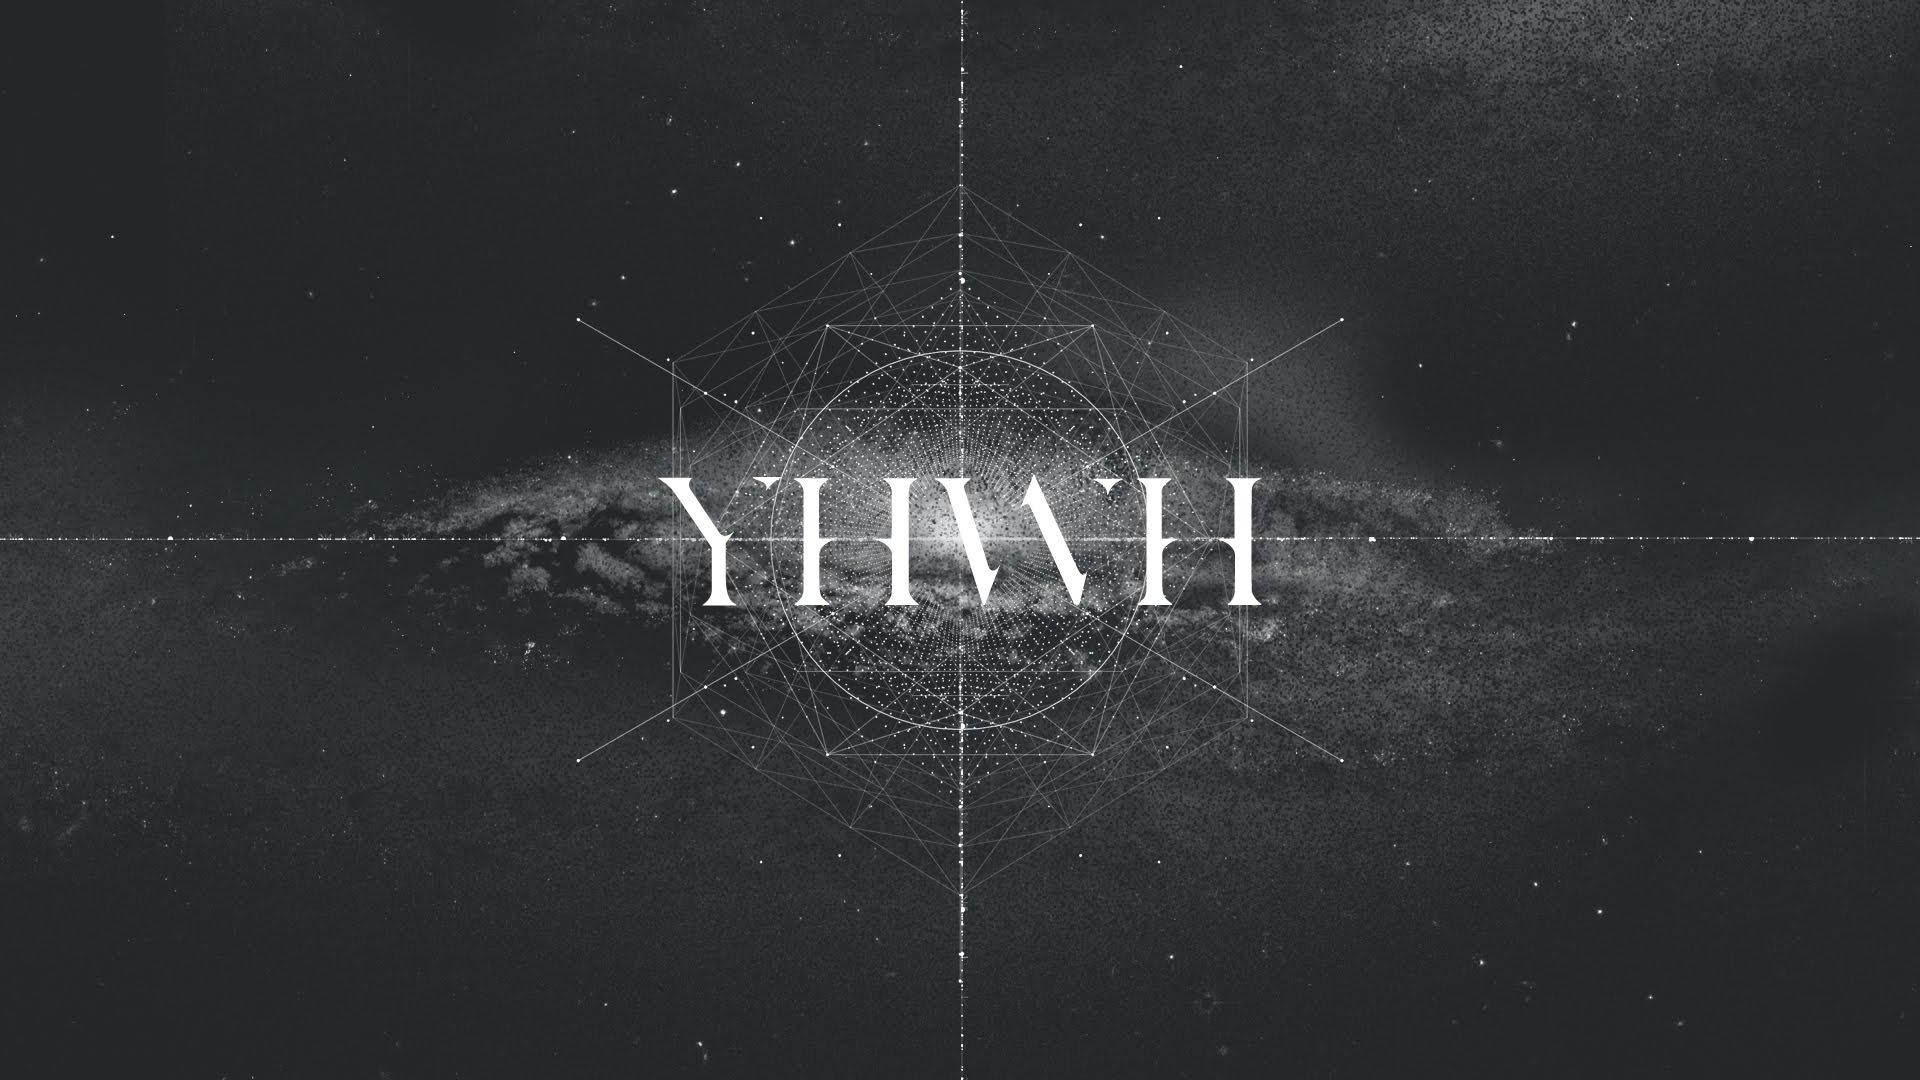 Yahweh Wallpapers - Wallpaper Cave